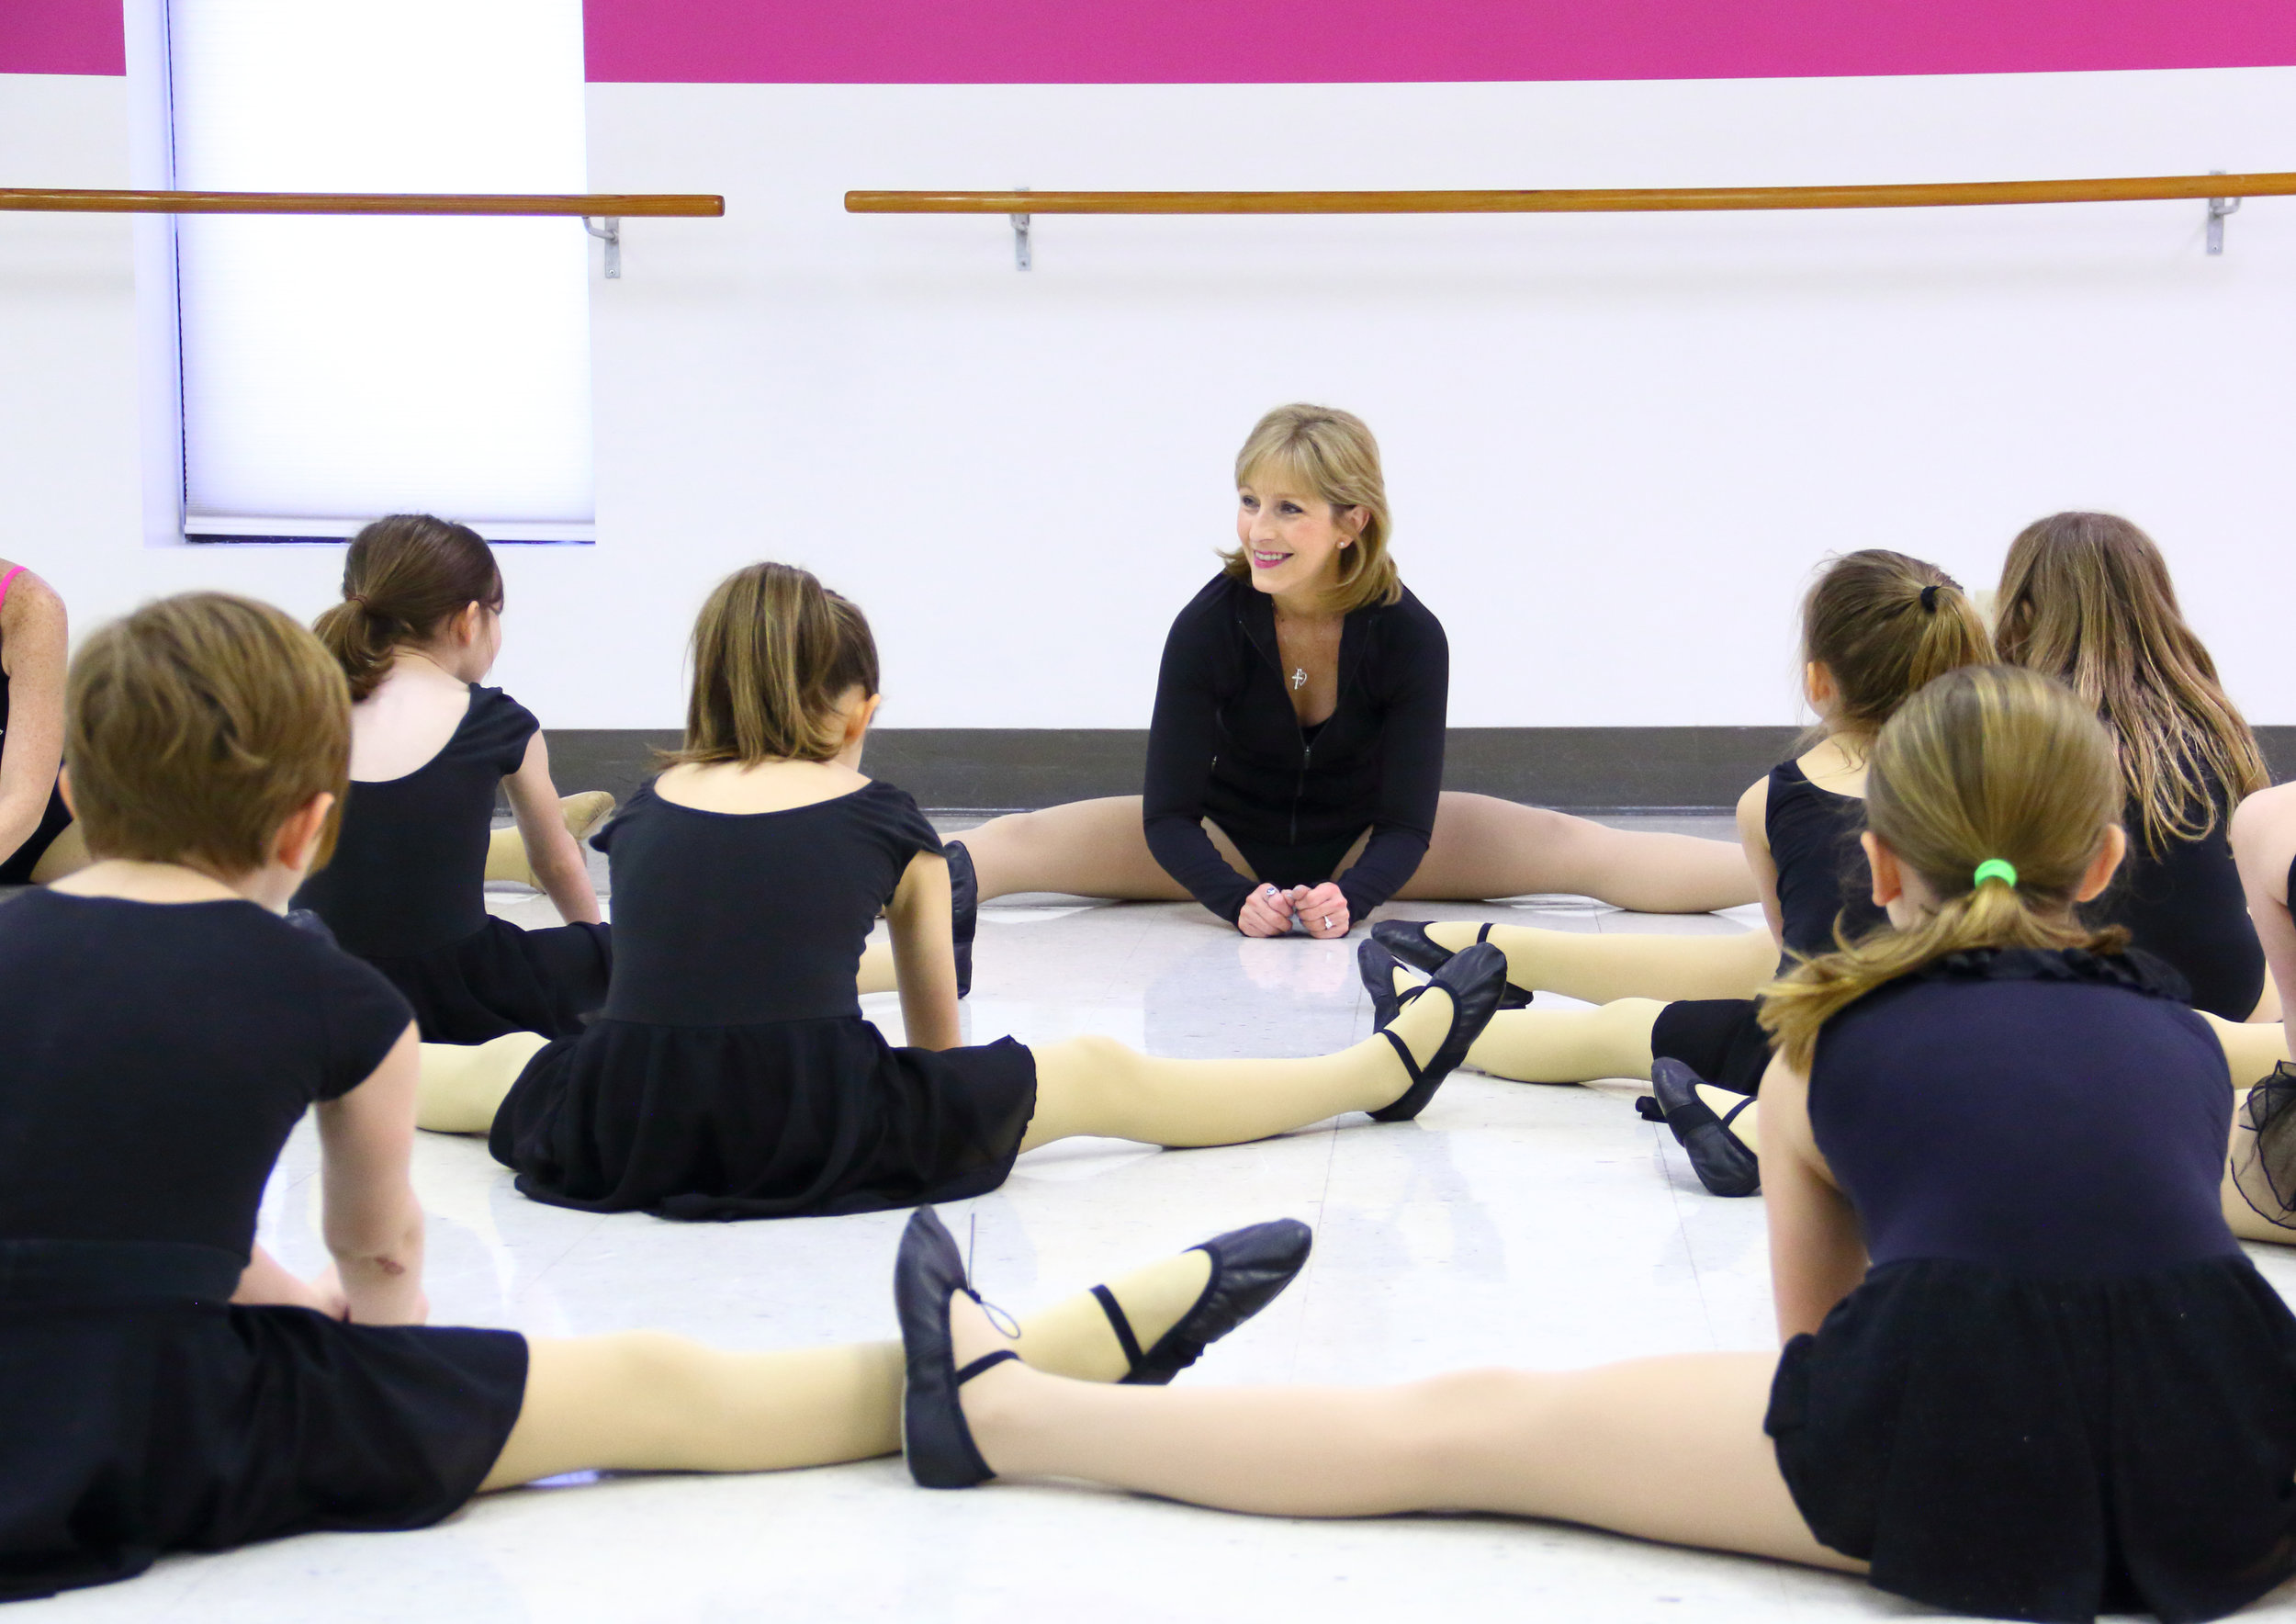 Dance Class Stretching